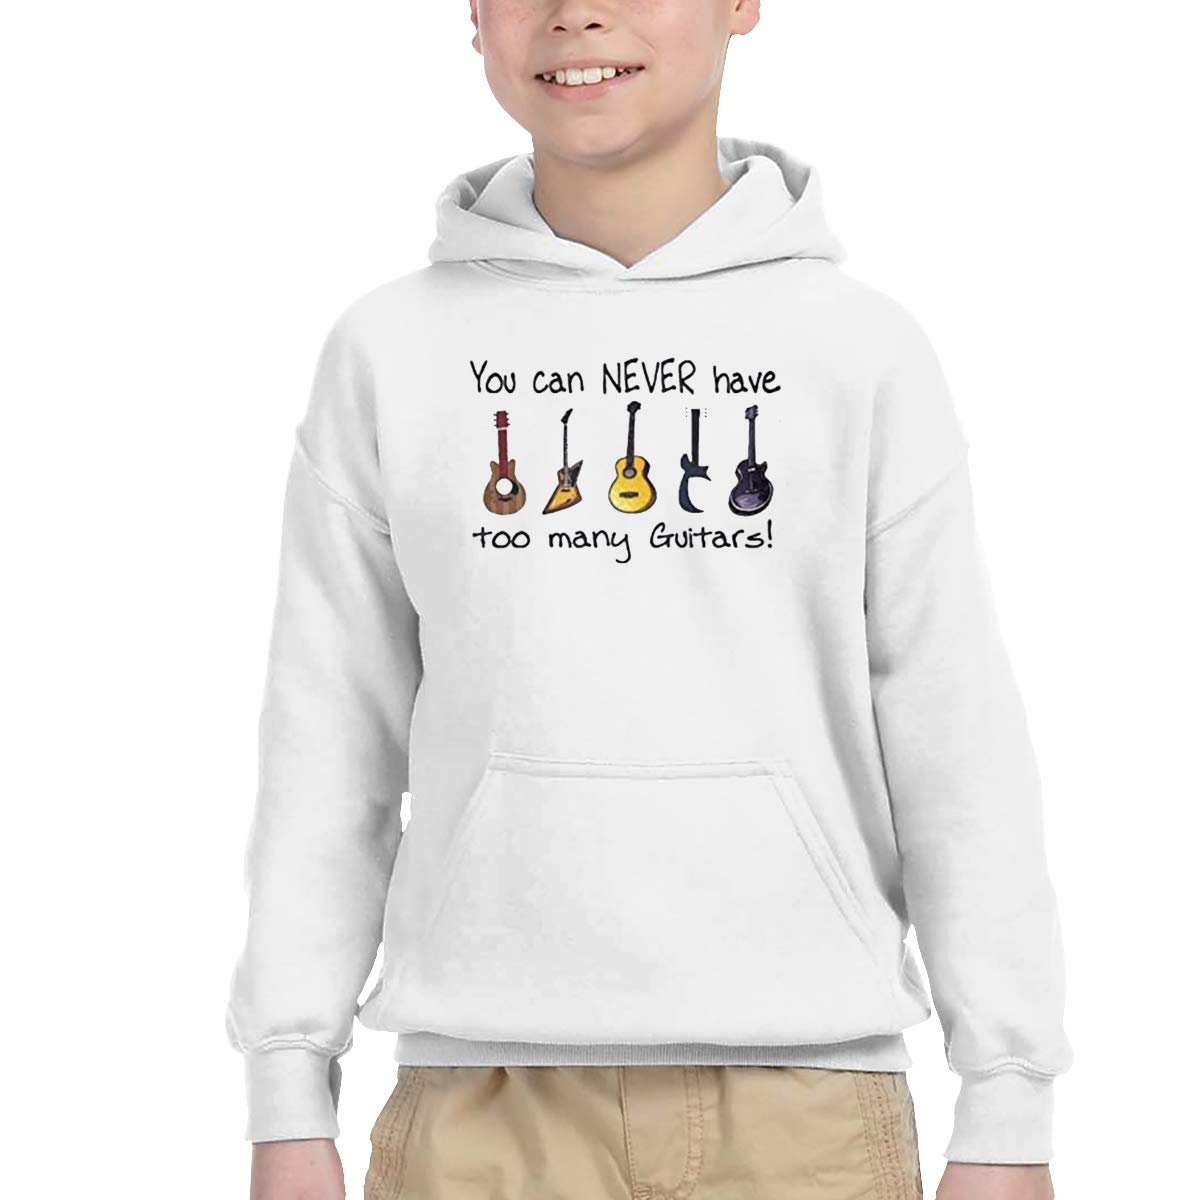 Ainlgchoo! Children'sClassic Hiking Fleece Print Can Never Have Too Many Guitars 2T White by Ainlgchoo!